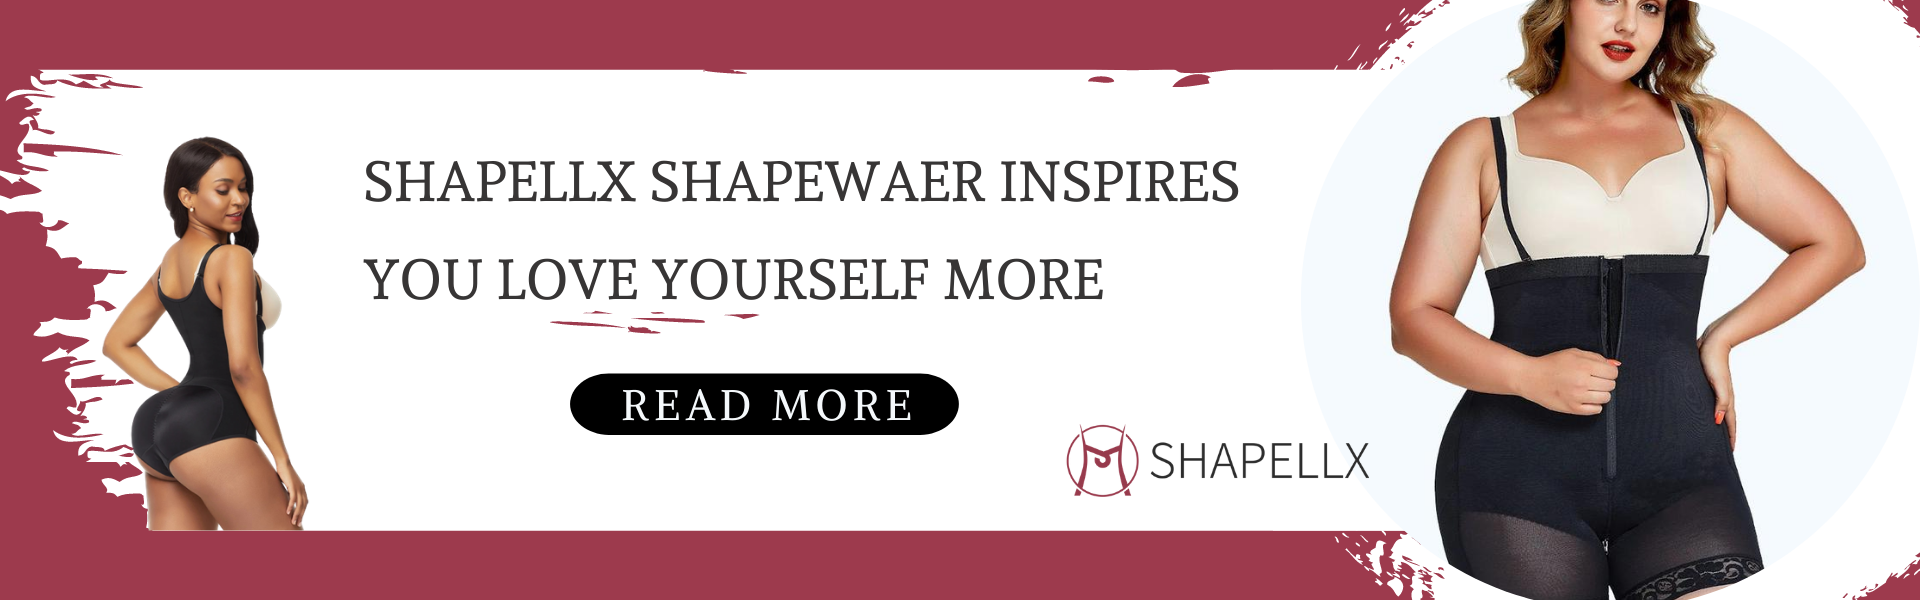 Shapellx Shapewear Inspires You to Love Yourself More